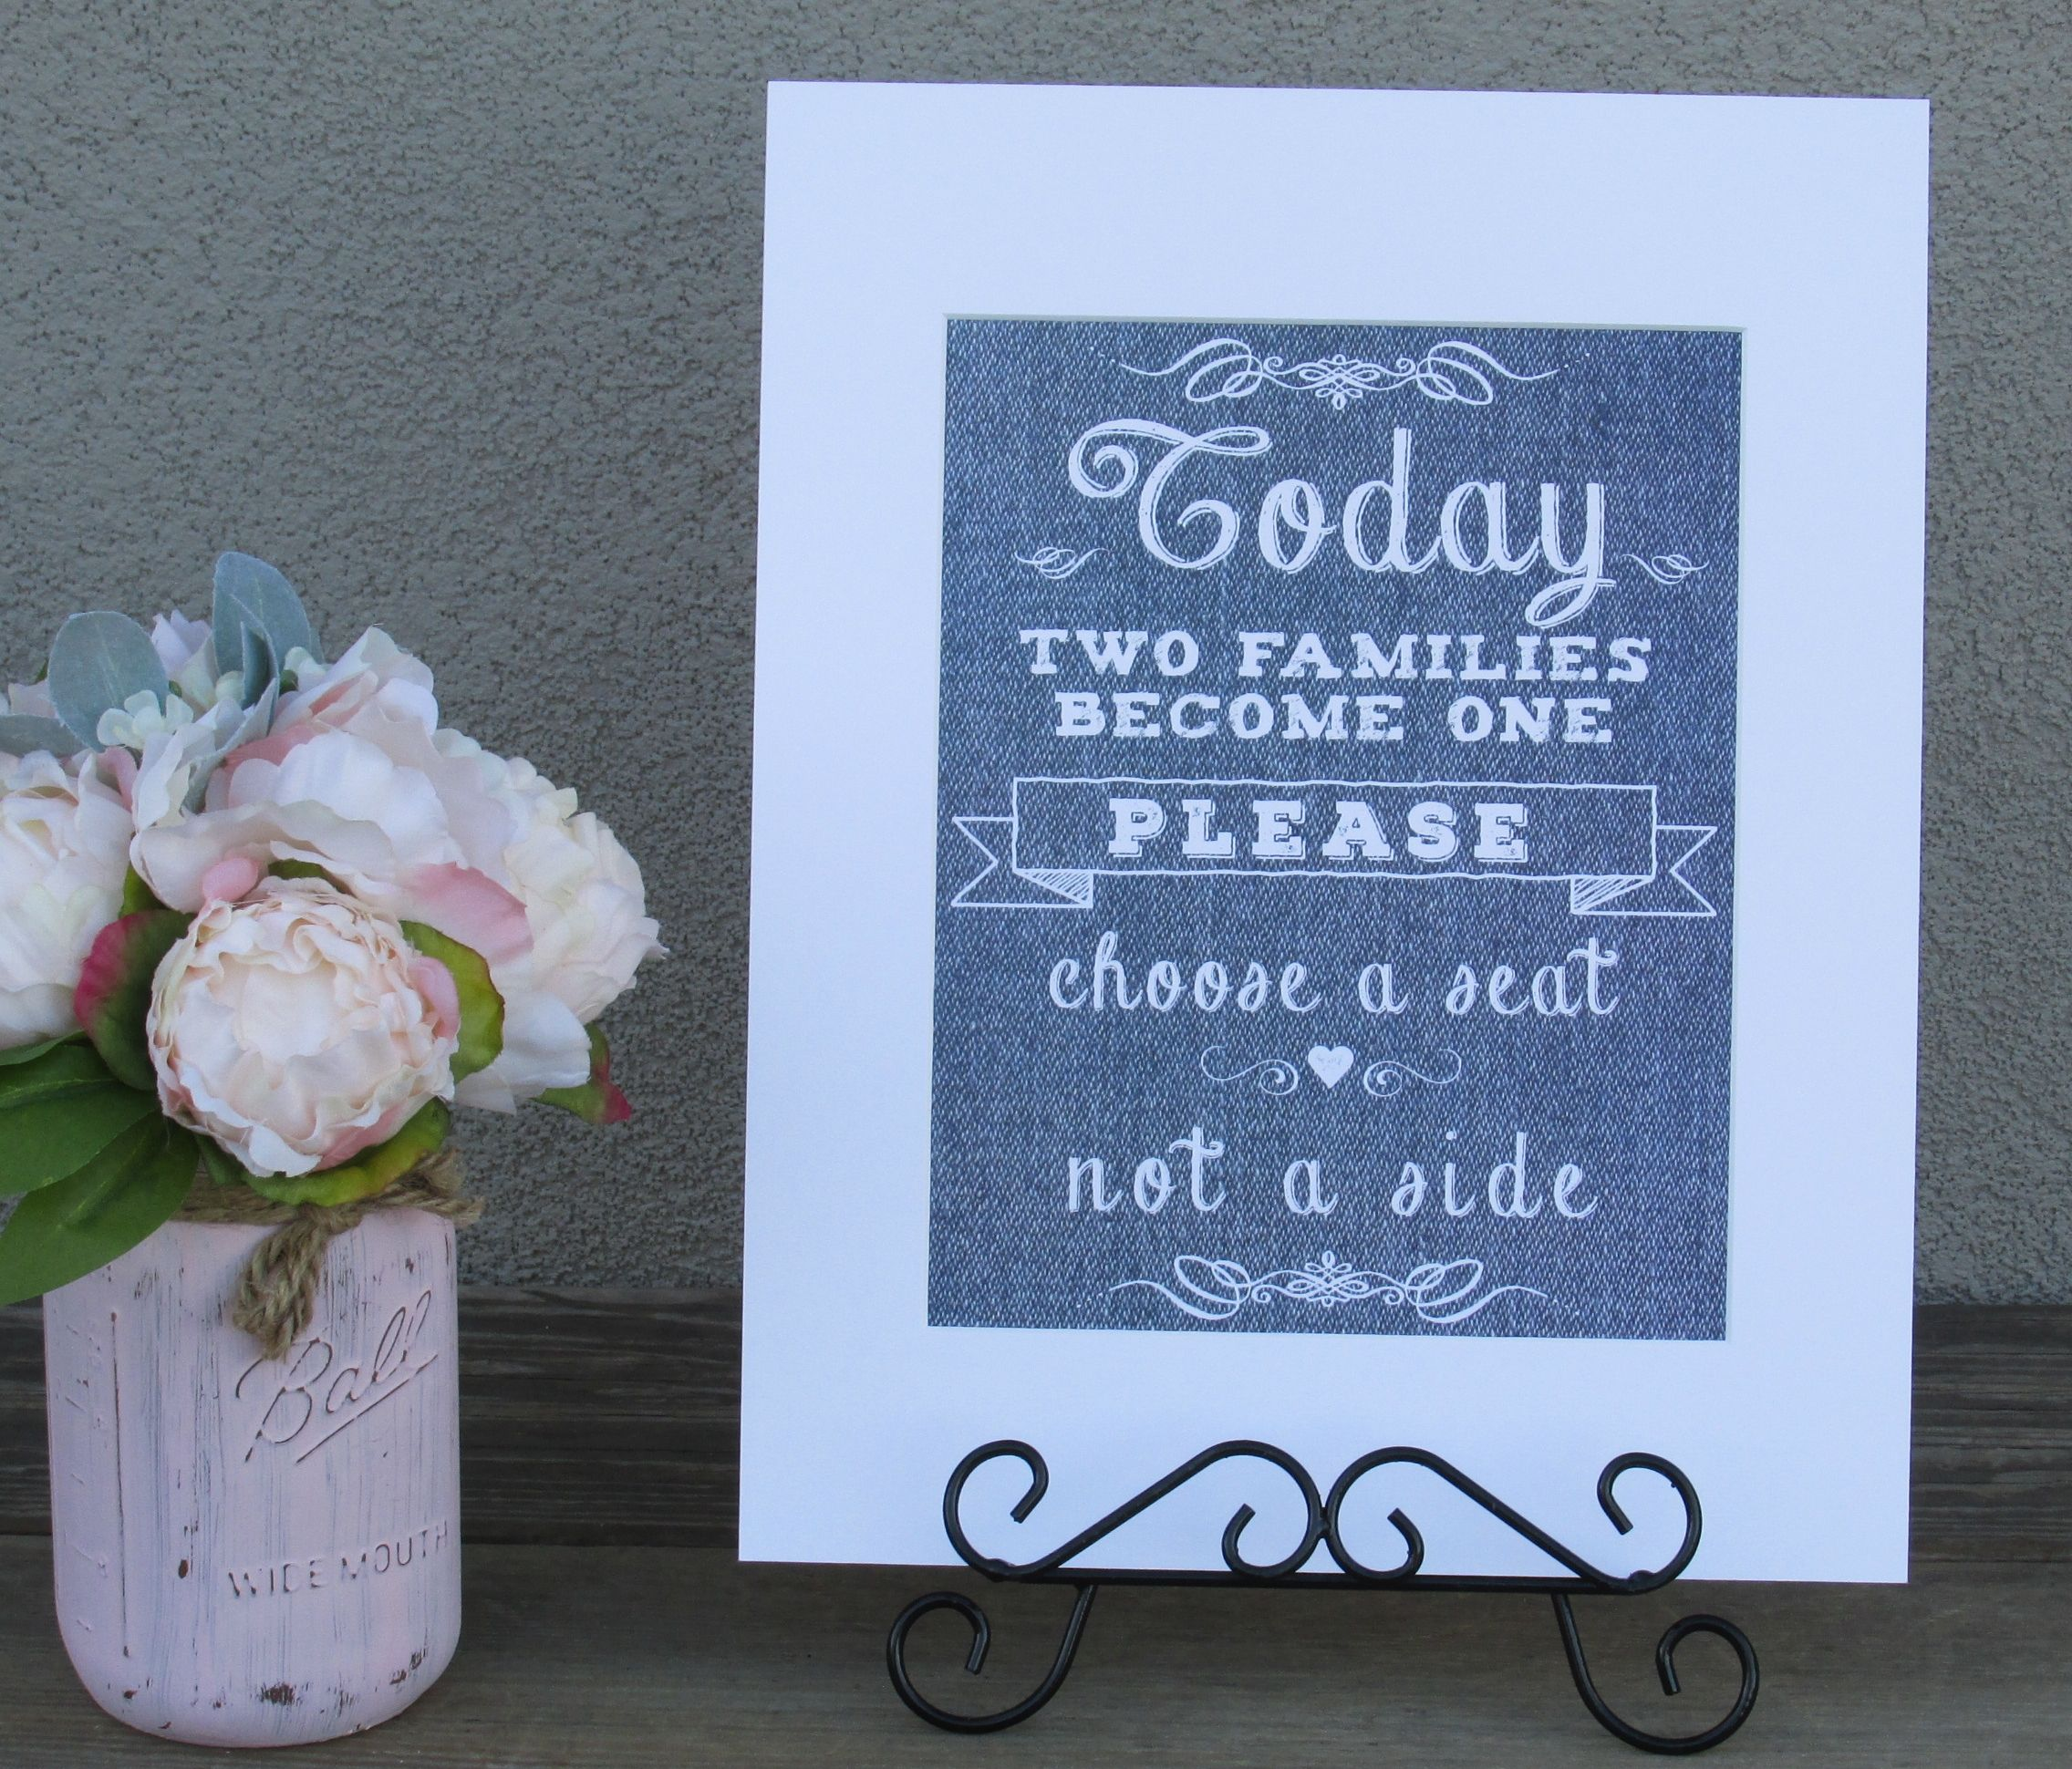 https://www.tradesy.com/weddings/wedding-decorations/light-blue-denim-look-wedding-signs-will-be-perfect-for-a-burlap-lace-and-denim-wedding-2032004/  #blue #bluewedding #bluethemedwedding #weddingdecor #denim #rustic #wedding #cute #classy  #seatingchart #todaytwofamiliesbecomeone